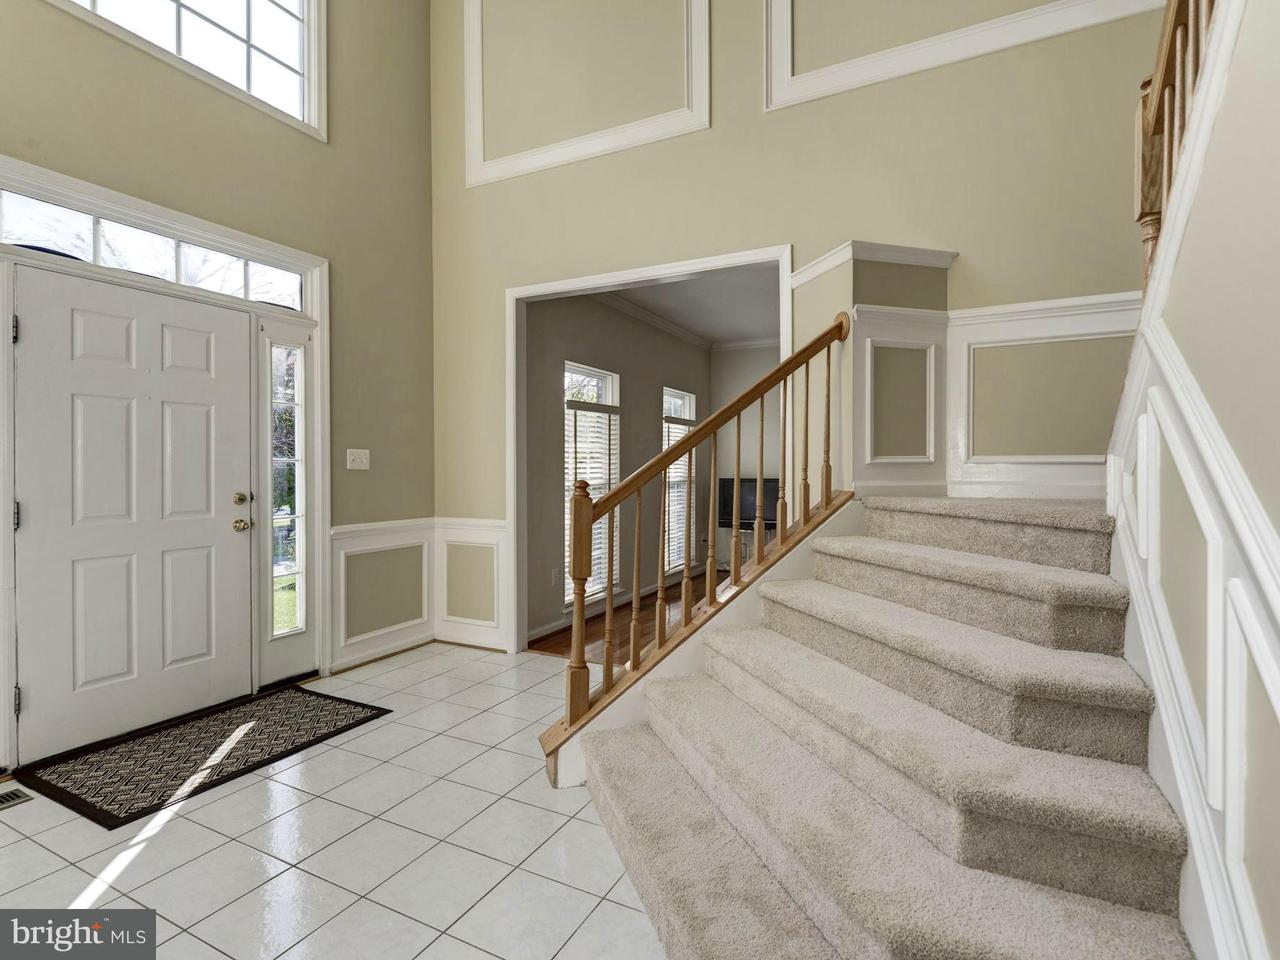 Single Family Home for Sale at 12608 SHOAL CREEK TER 12608 SHOAL CREEK TER Beltsville, Maryland 20705 United States